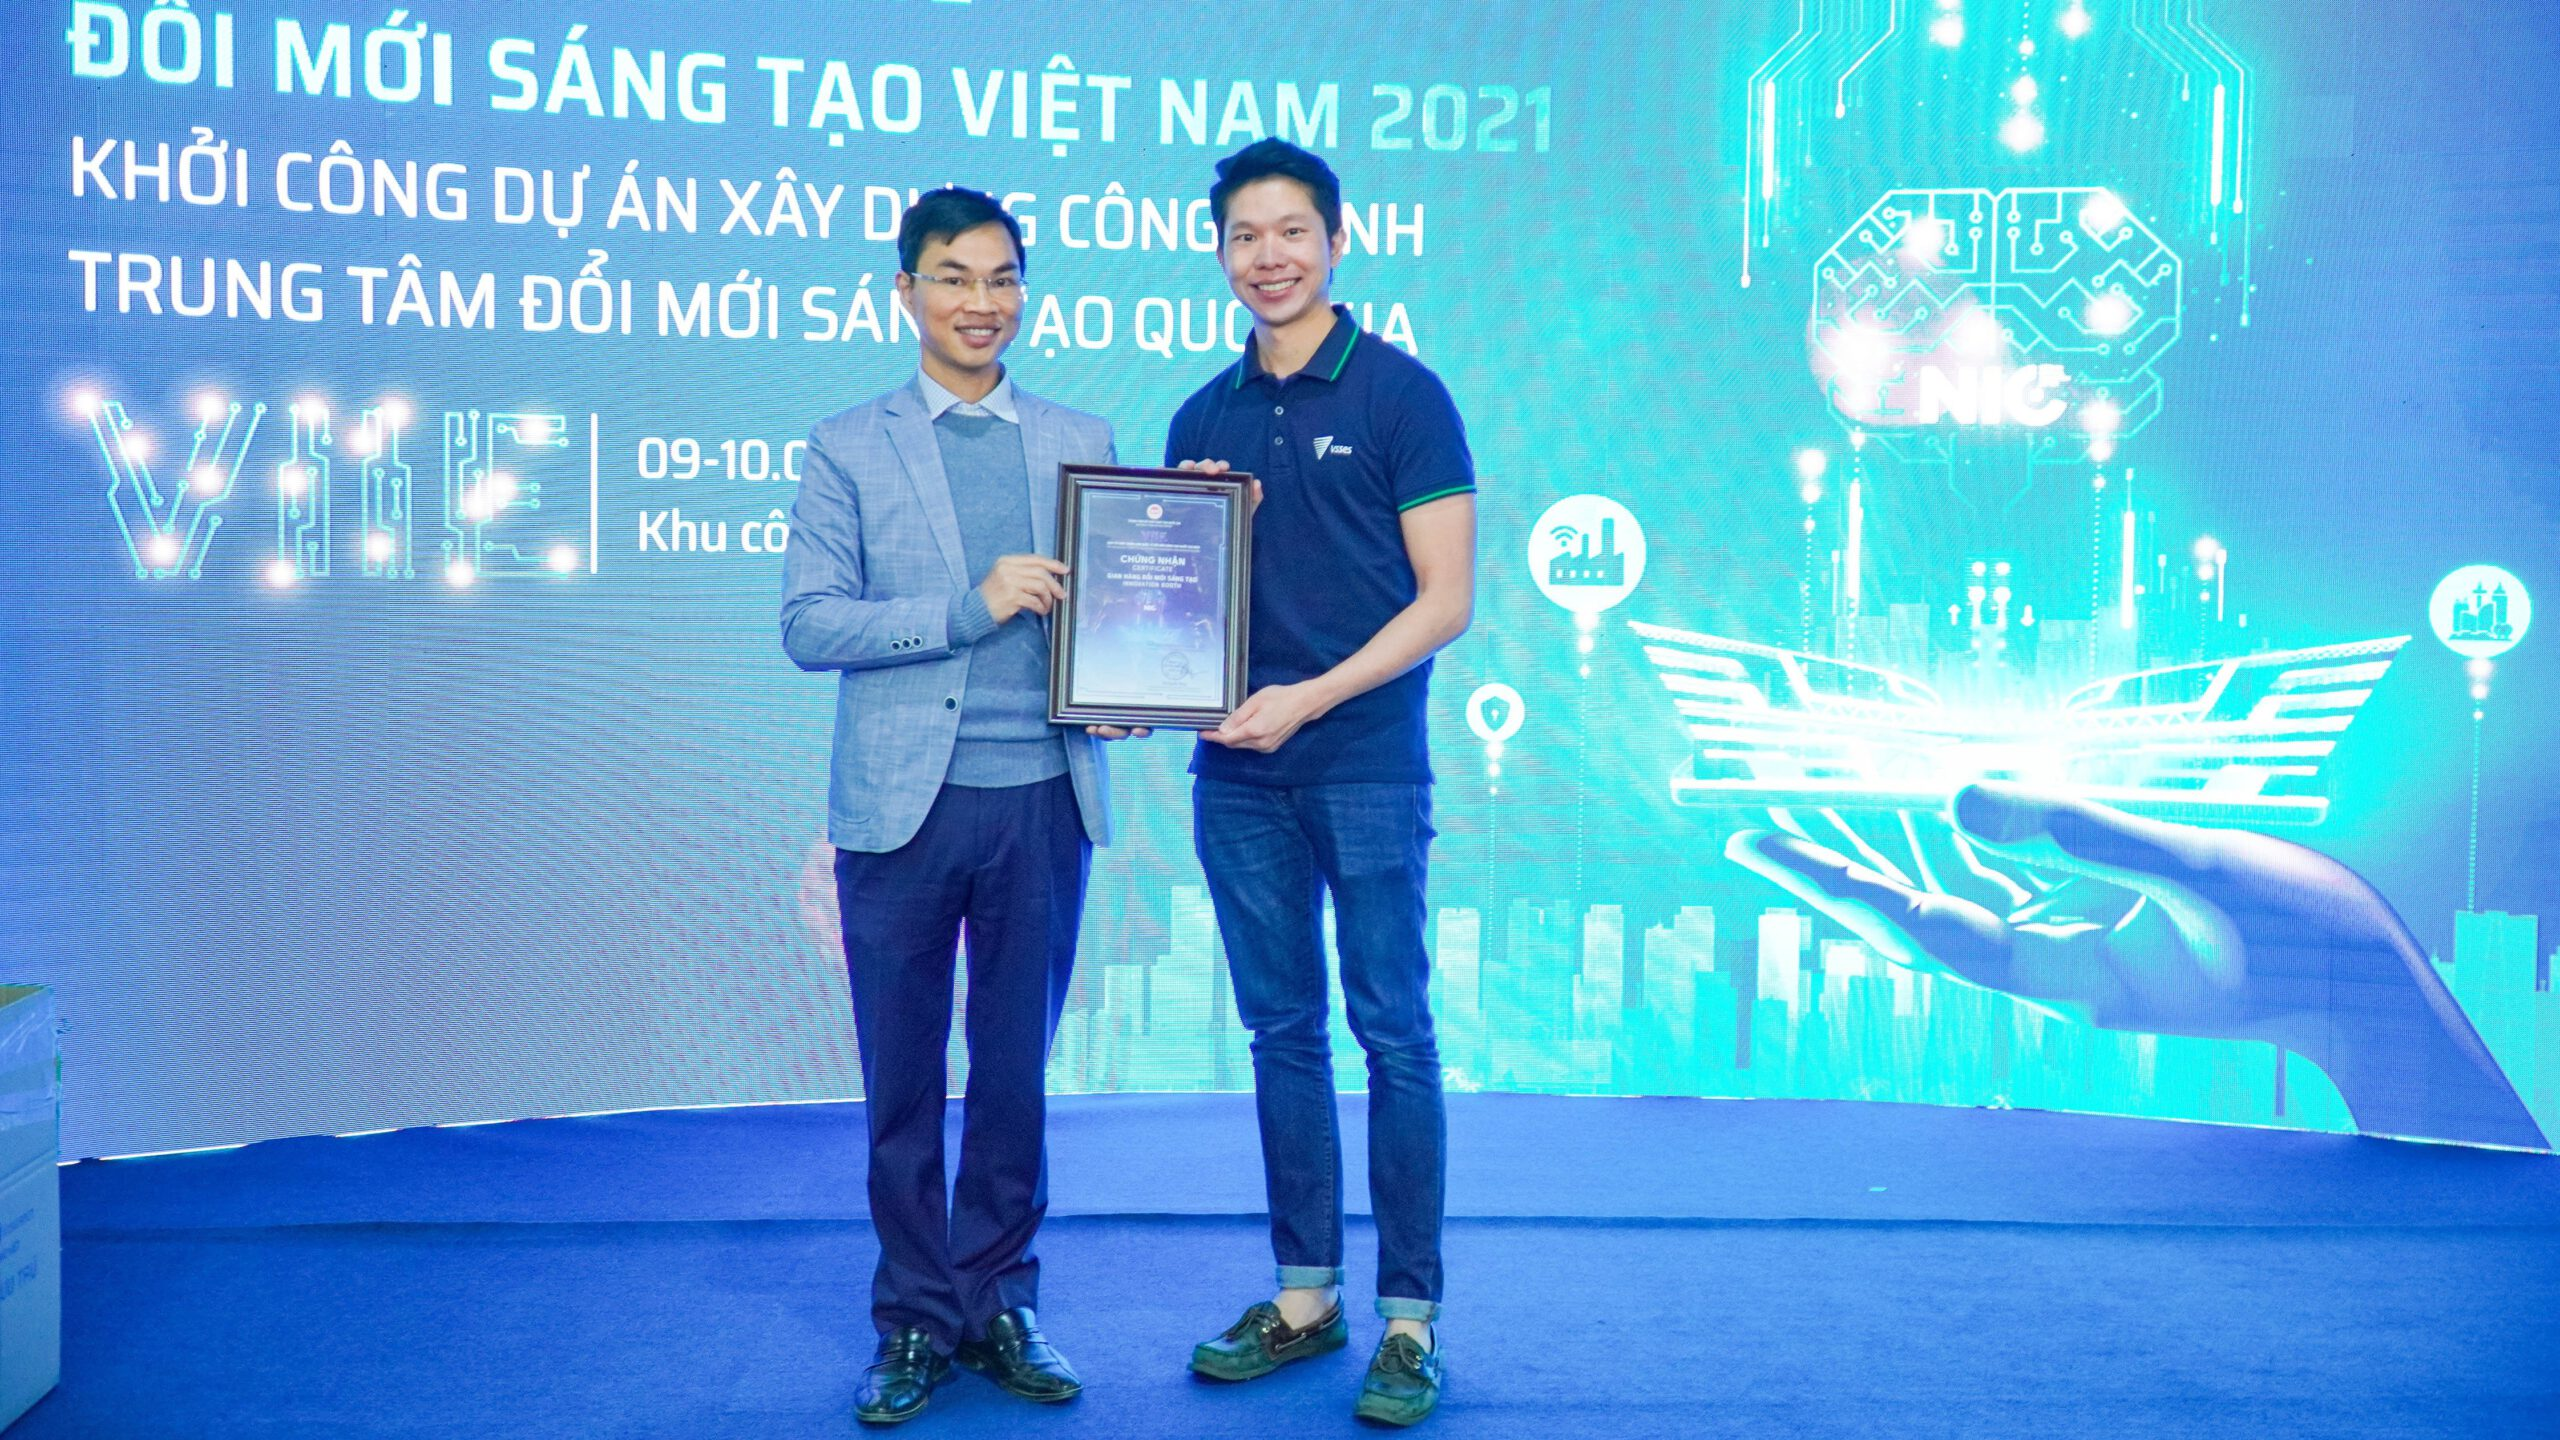 Rooftop Solar Solutions at the Vietnam International Innovation Expo 2021